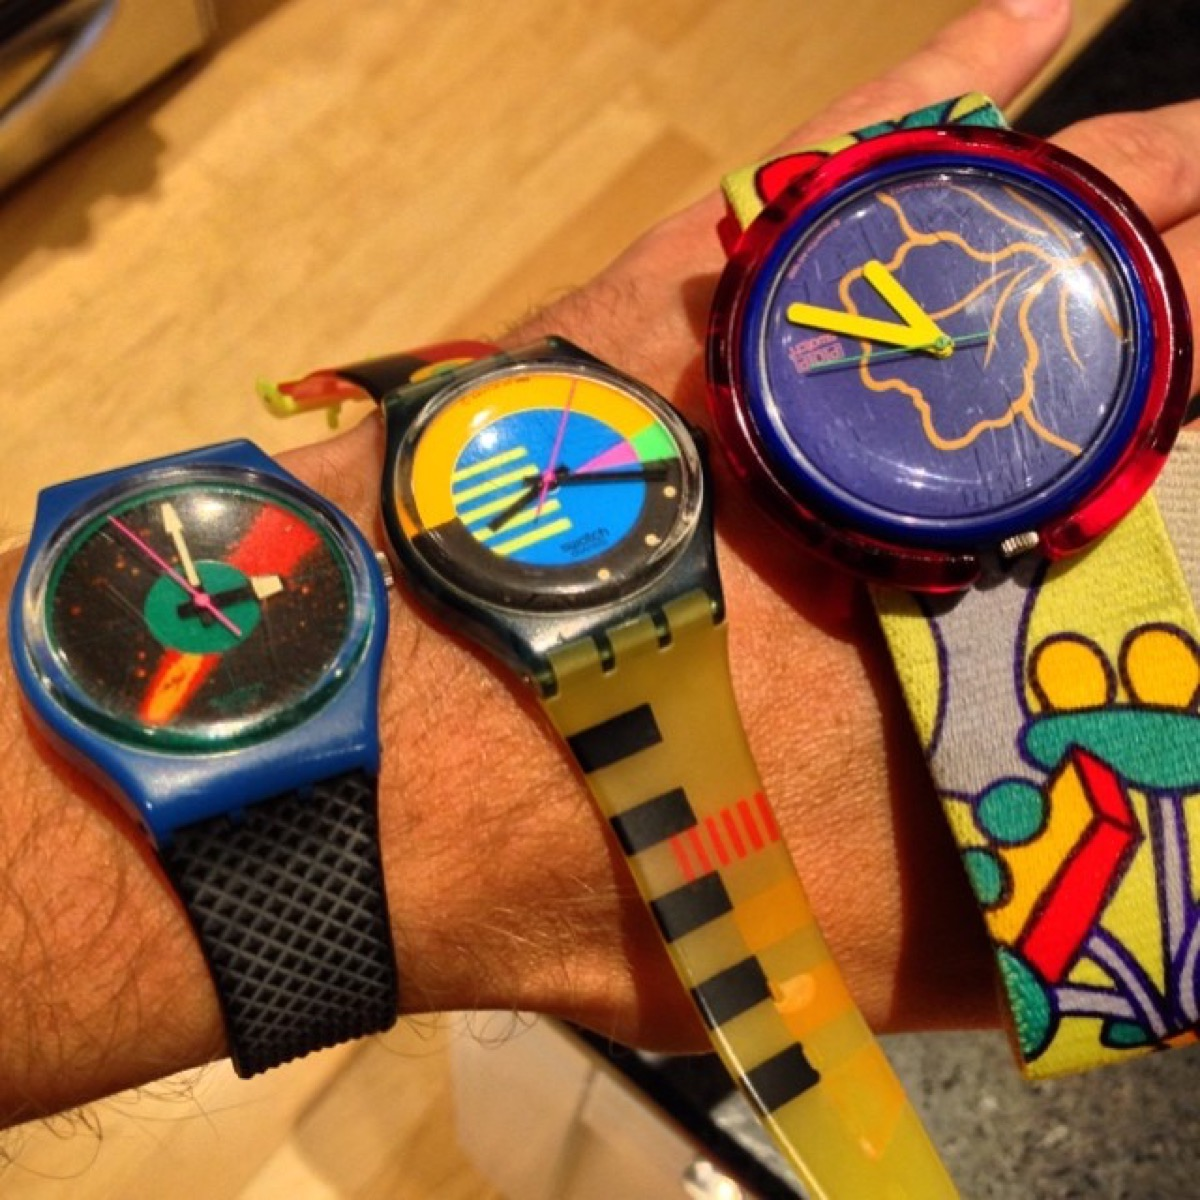 Swatch watches cool 1980s style